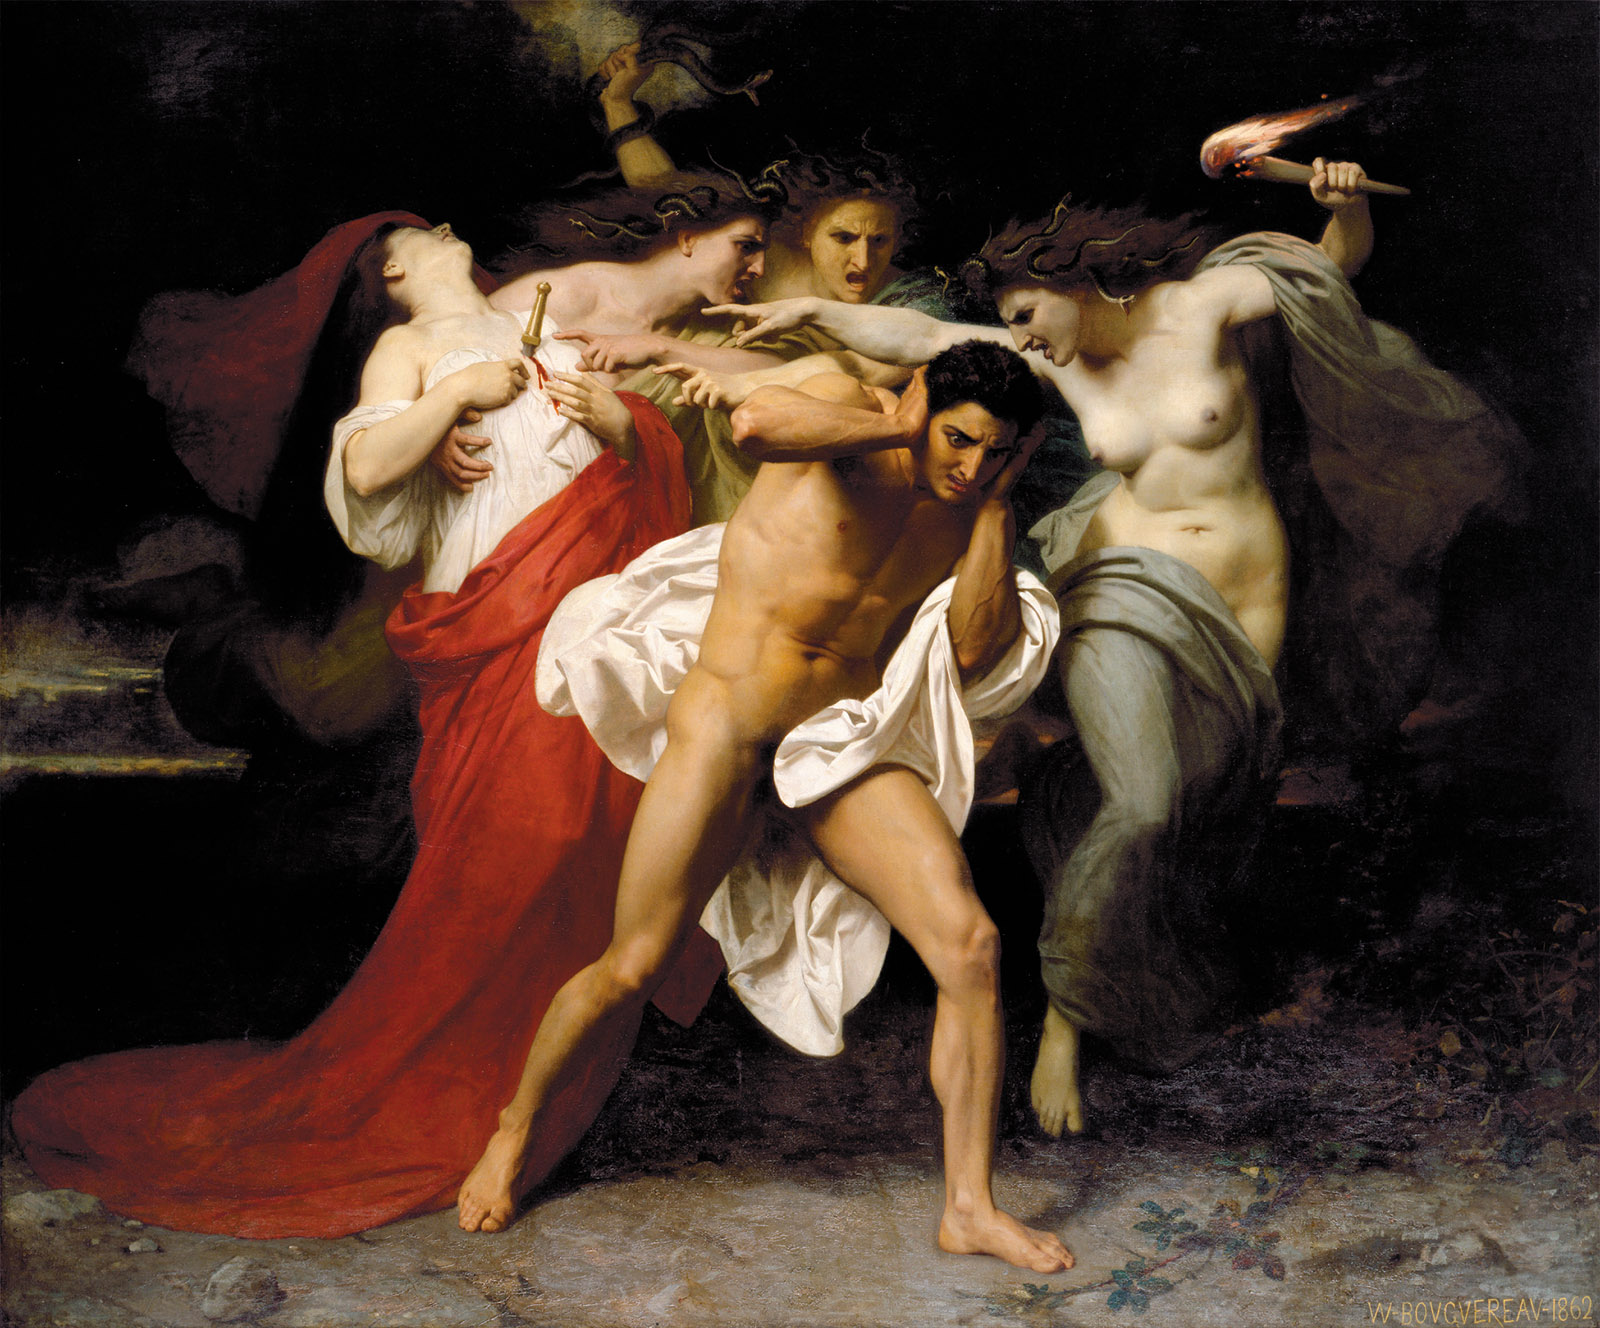 Orestes Pursued by the Furies by William-Adolphe Bouguereau